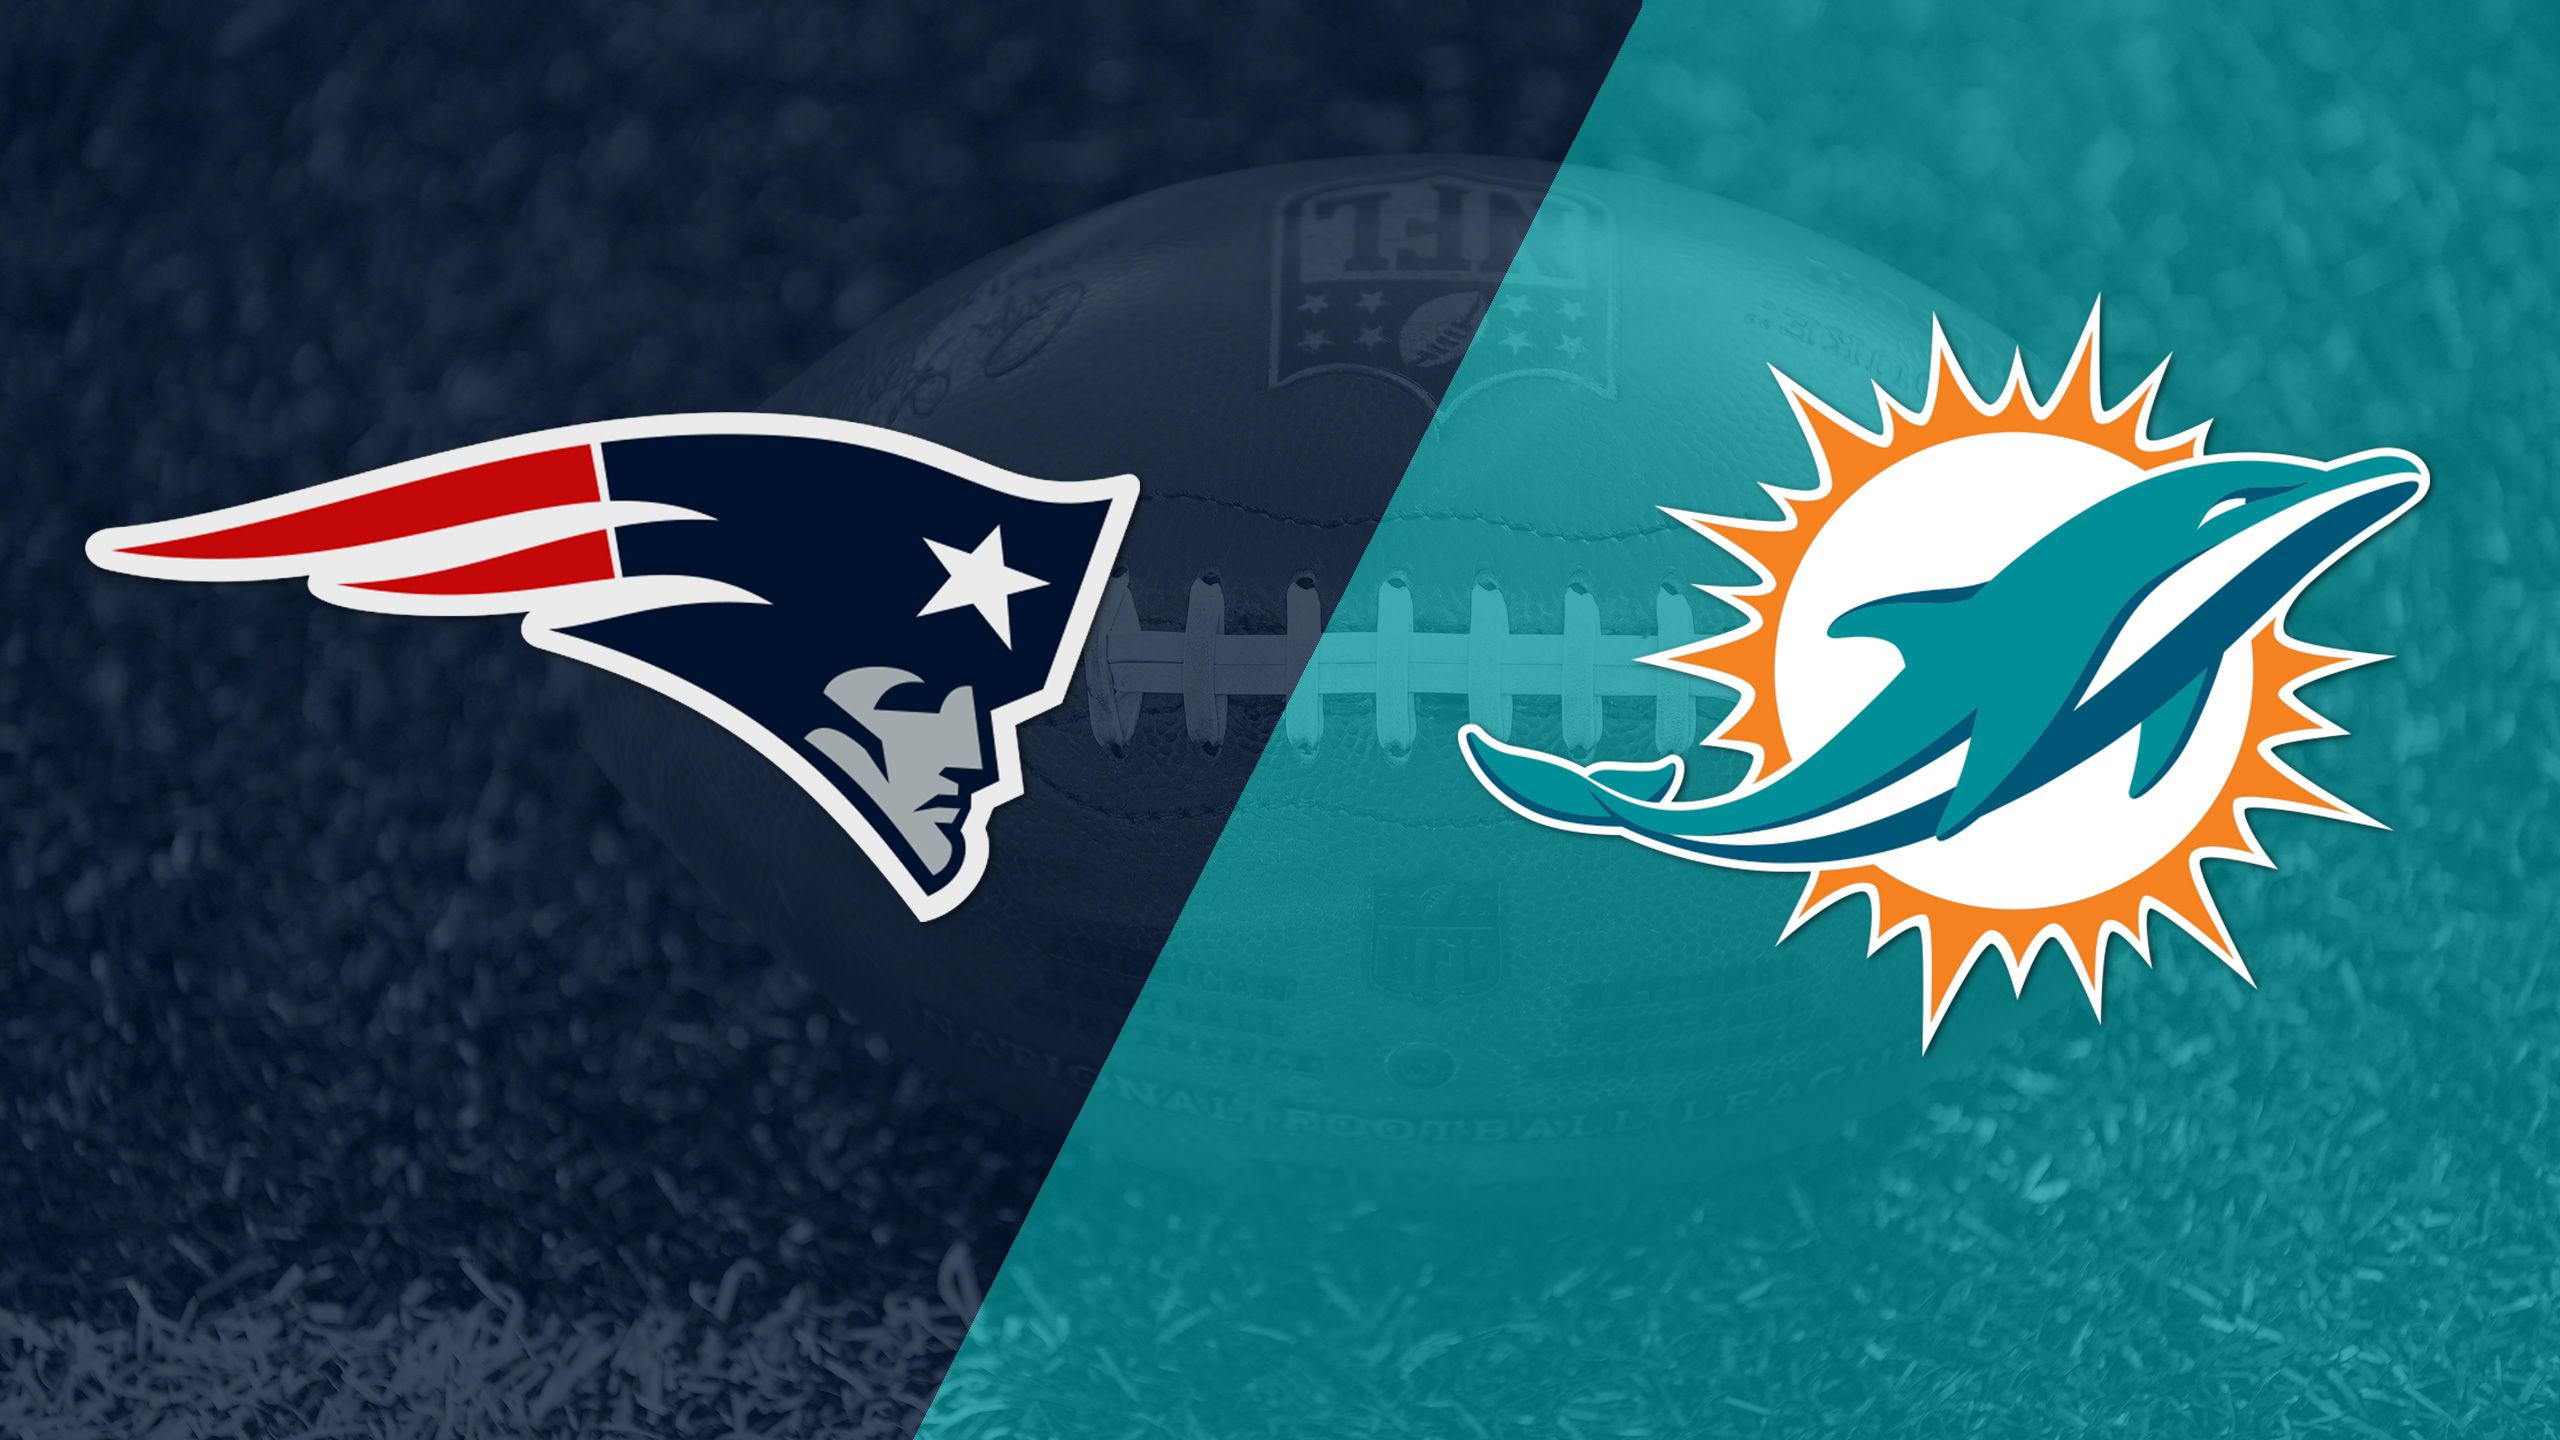 In Spanish - New England Patriots vs. Miami Dolphins